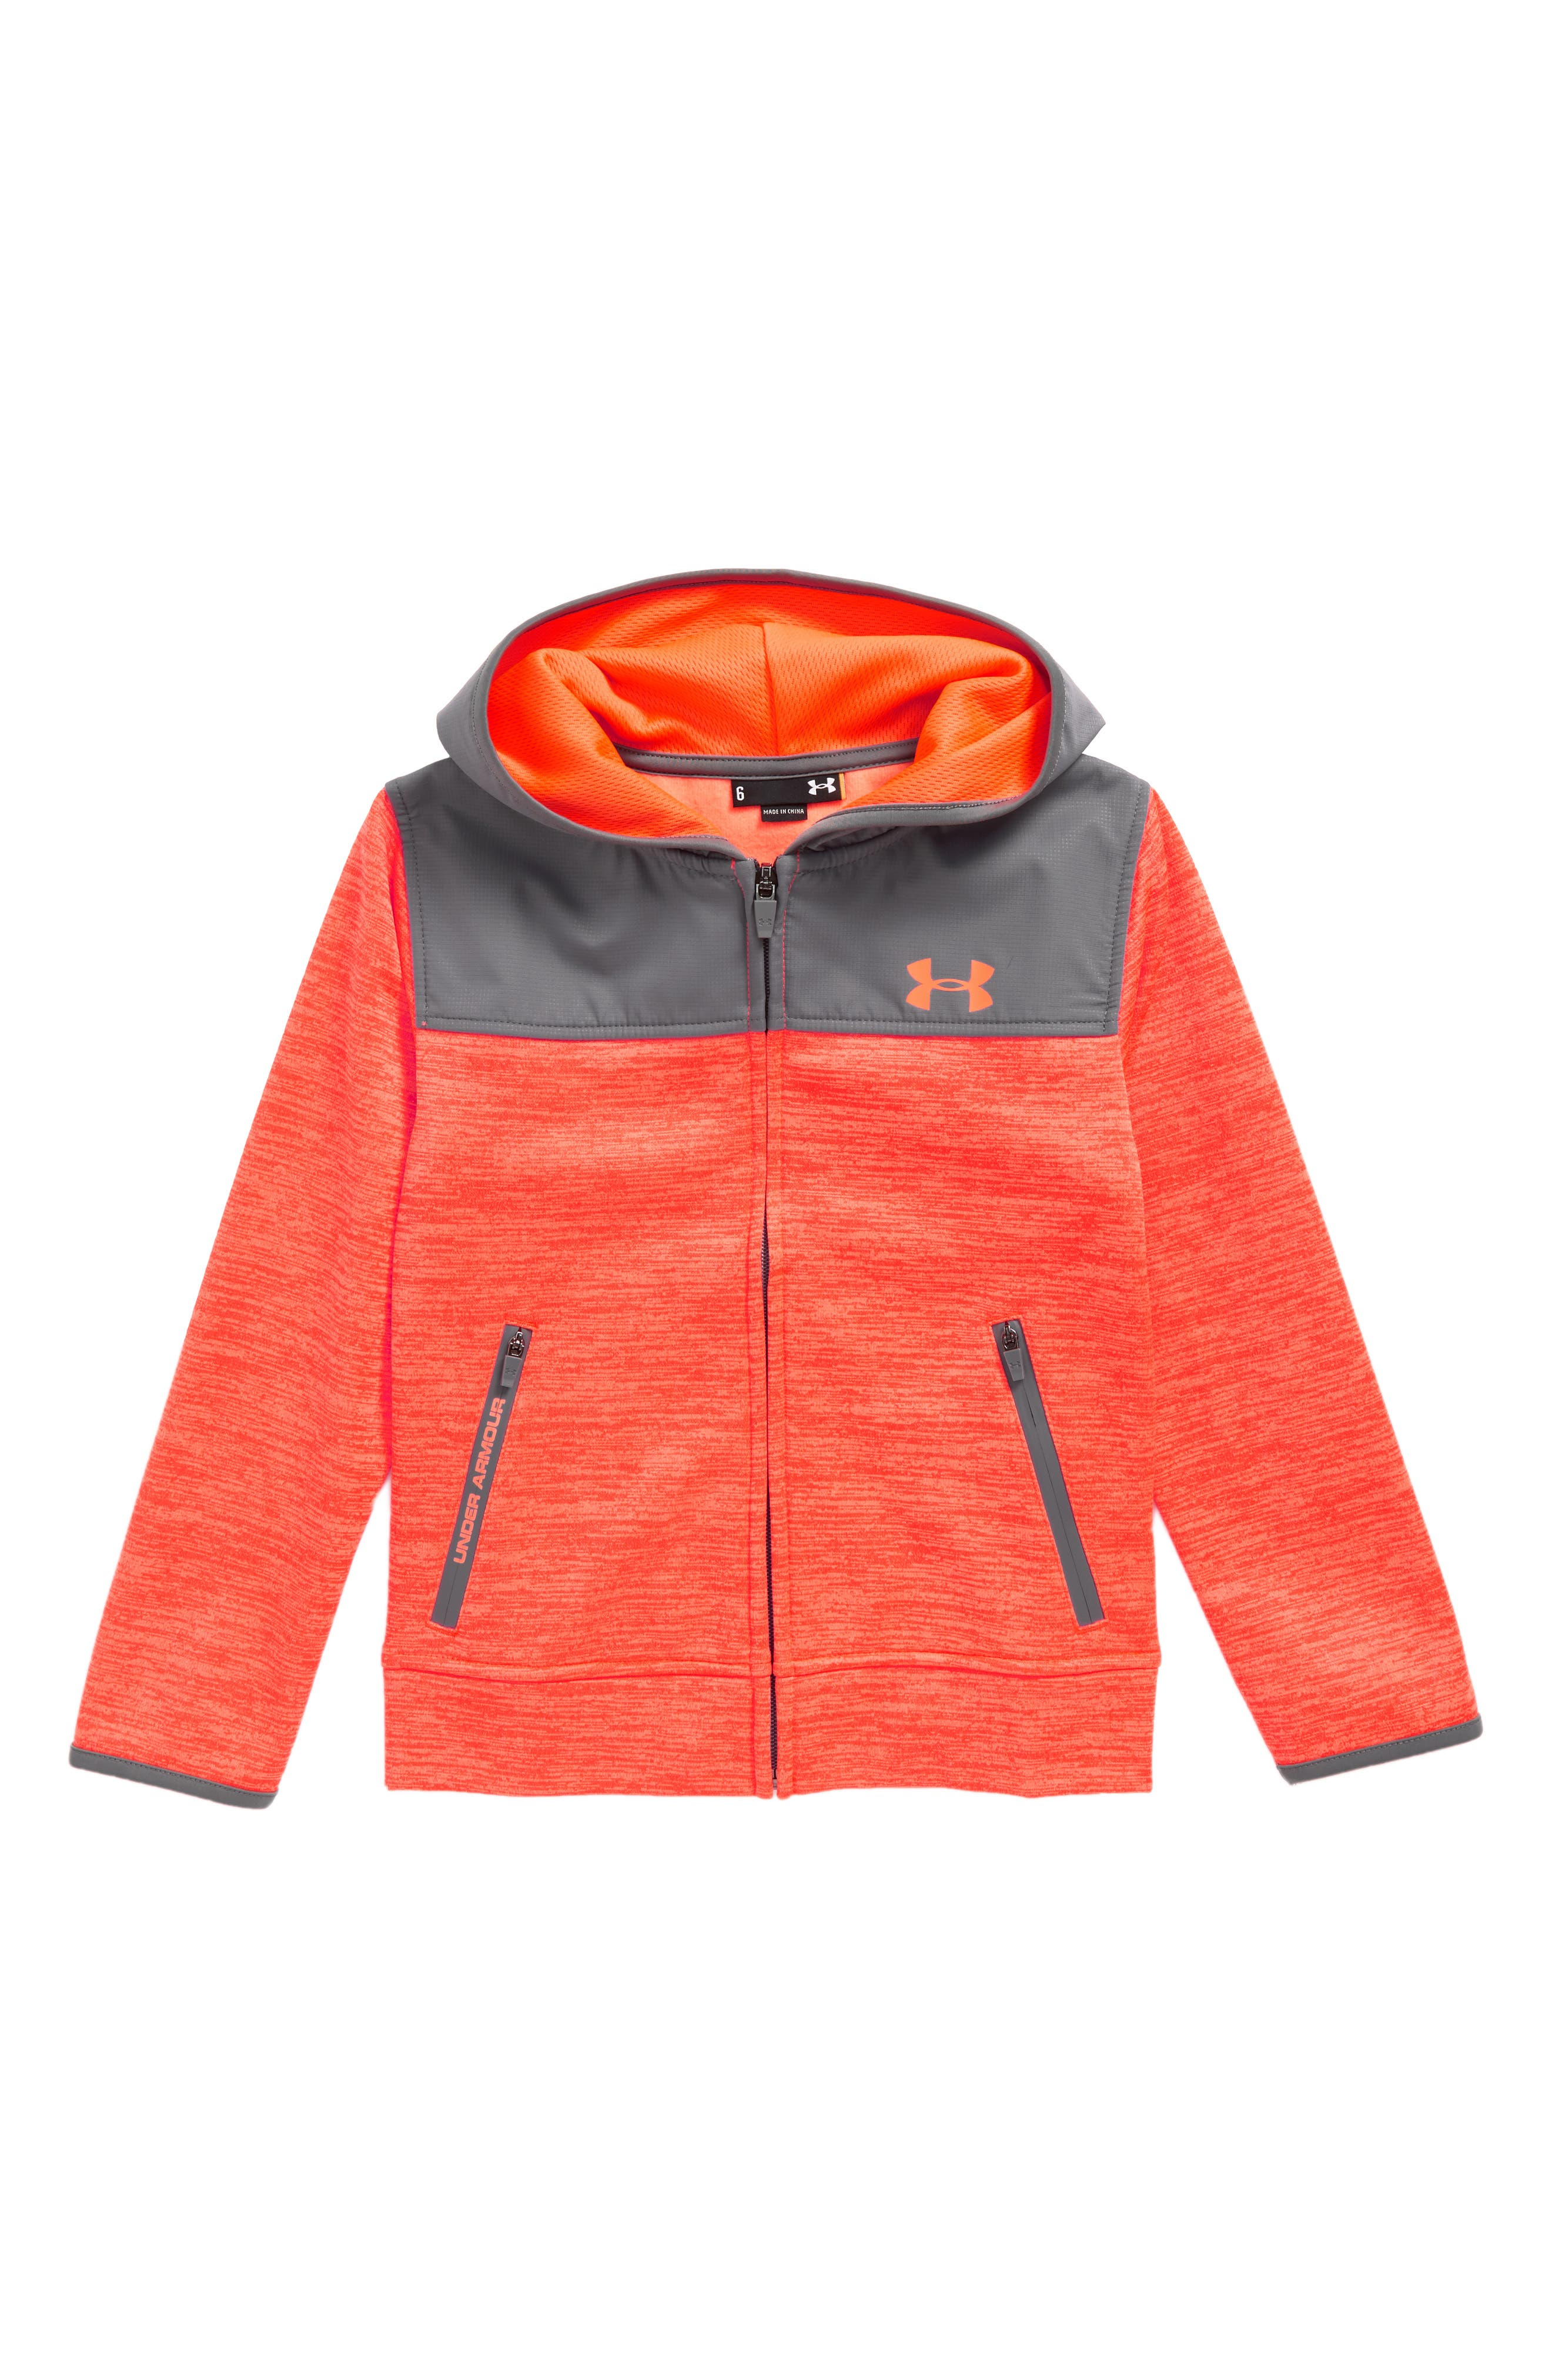 Under Armour Altitude Hoodie (Toddler Boys & Little Boys)